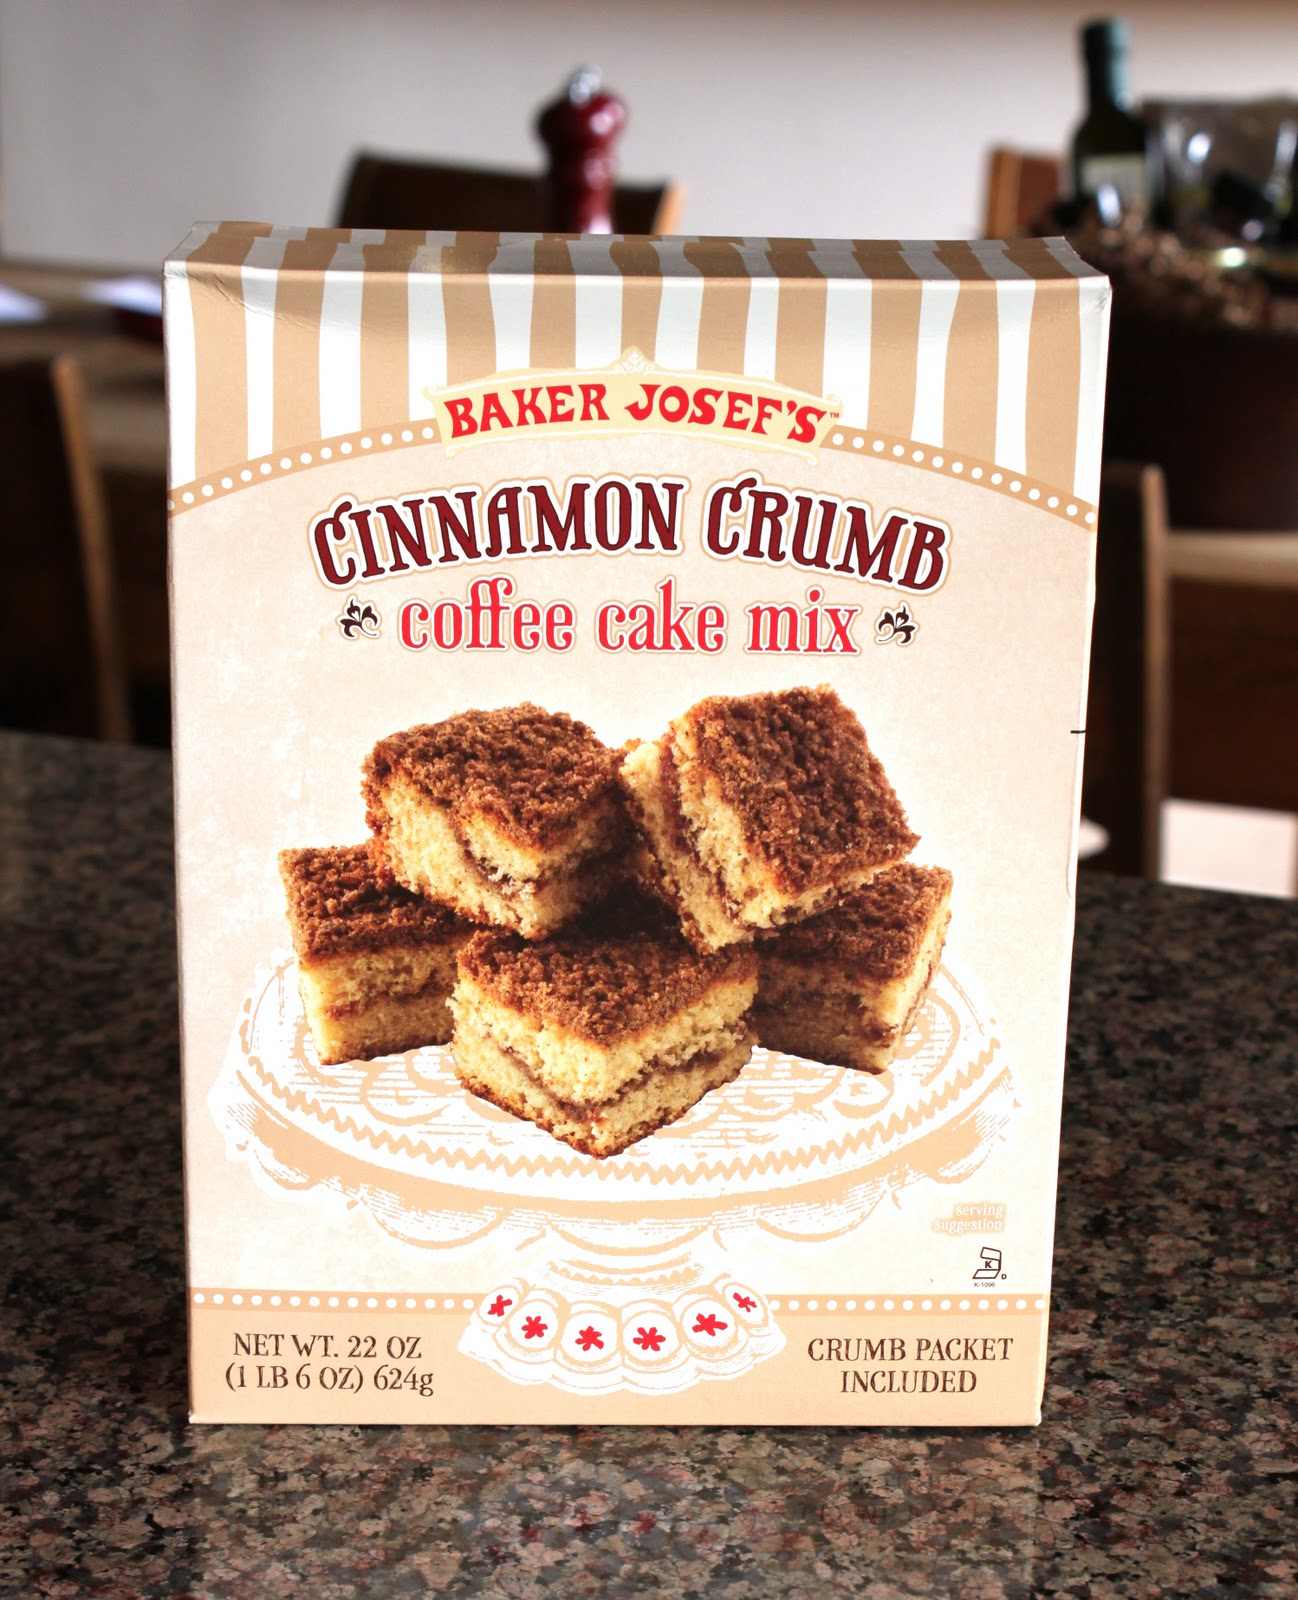 Where Can I Buy Aunt Jemima Coffee Cake Mix